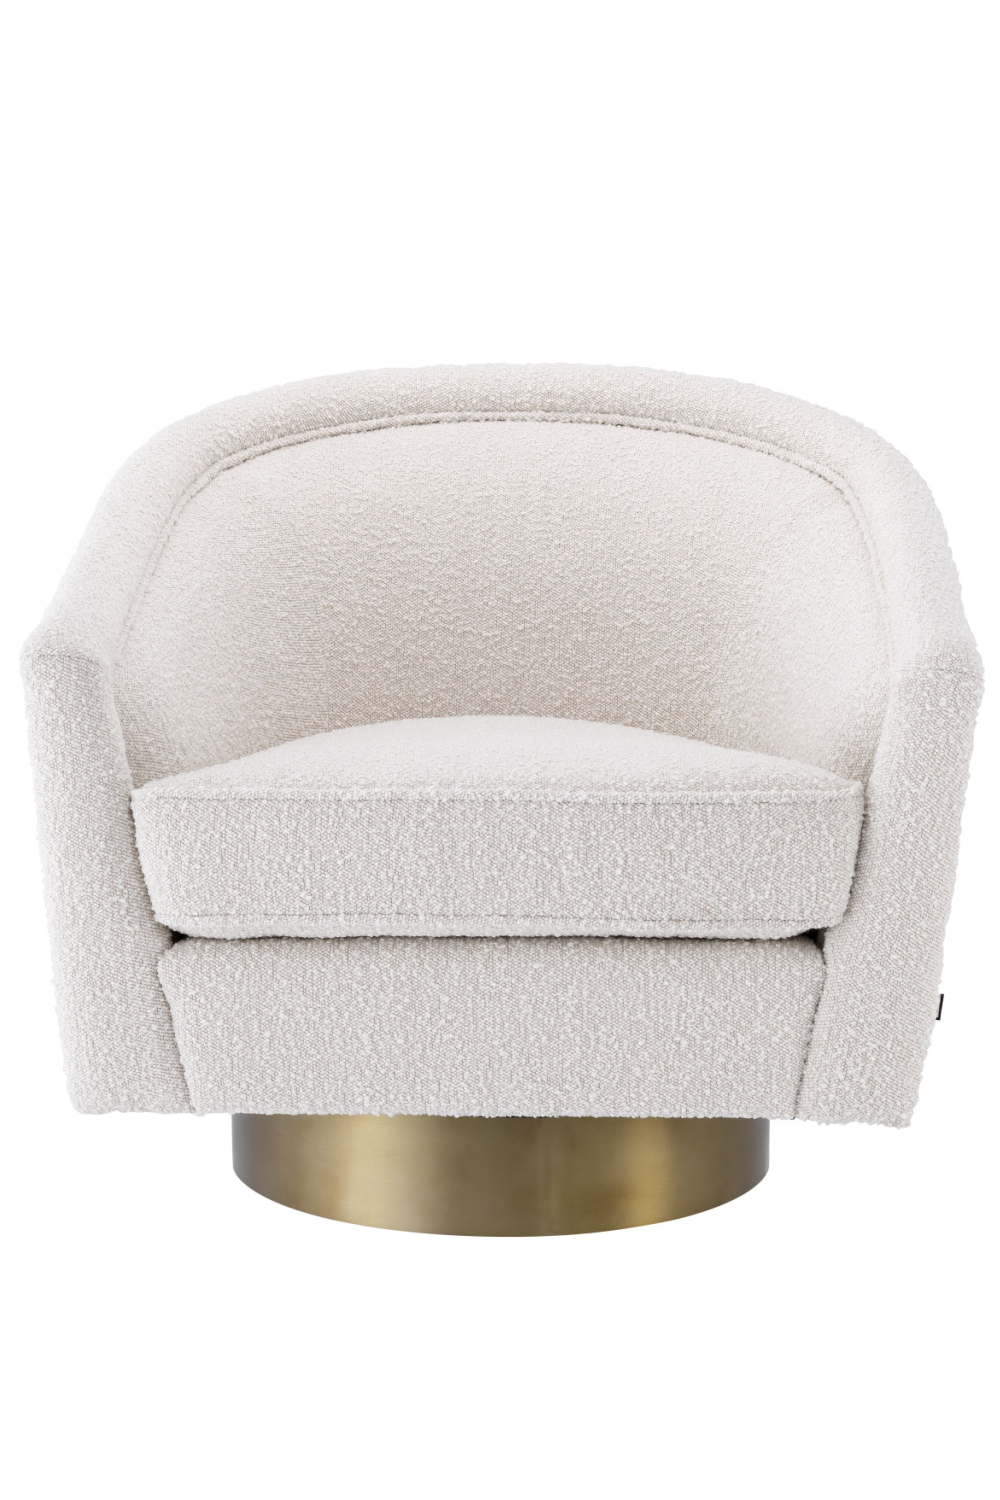 Bouclé Swivel Barrel Chair | Eichholtz Catene